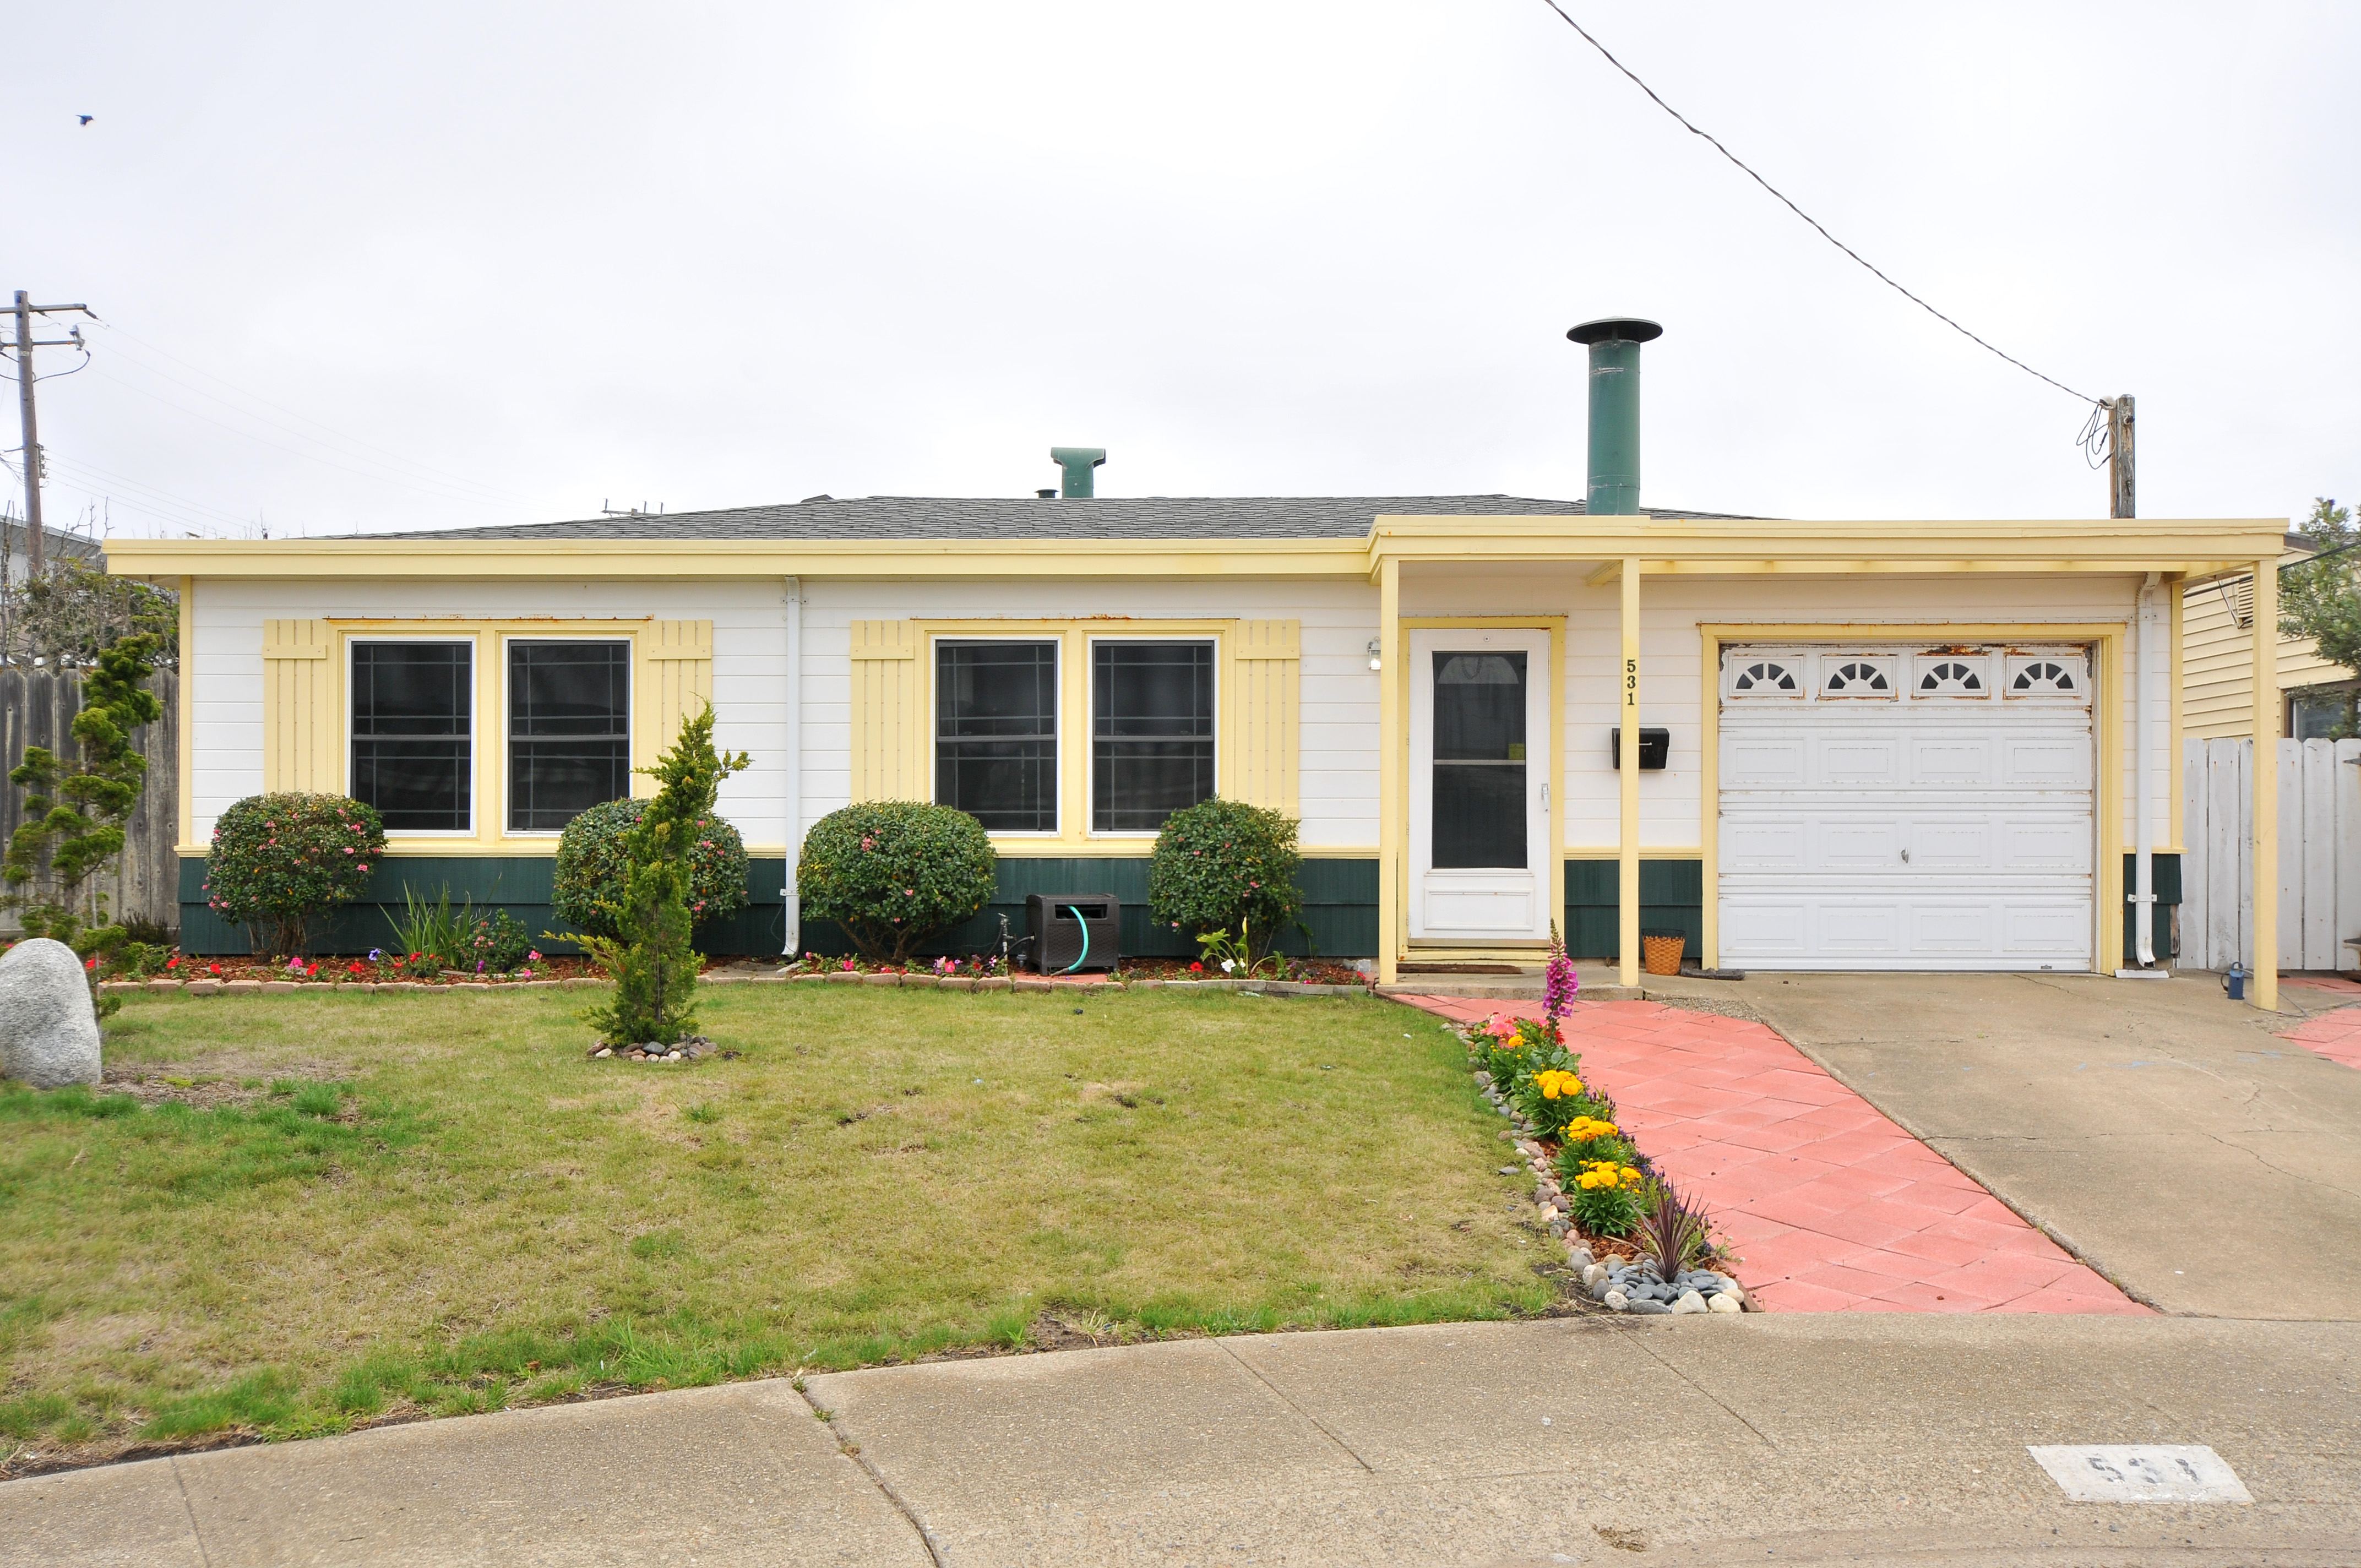 531 Dolphin Dr, Pacifica, CA 94044